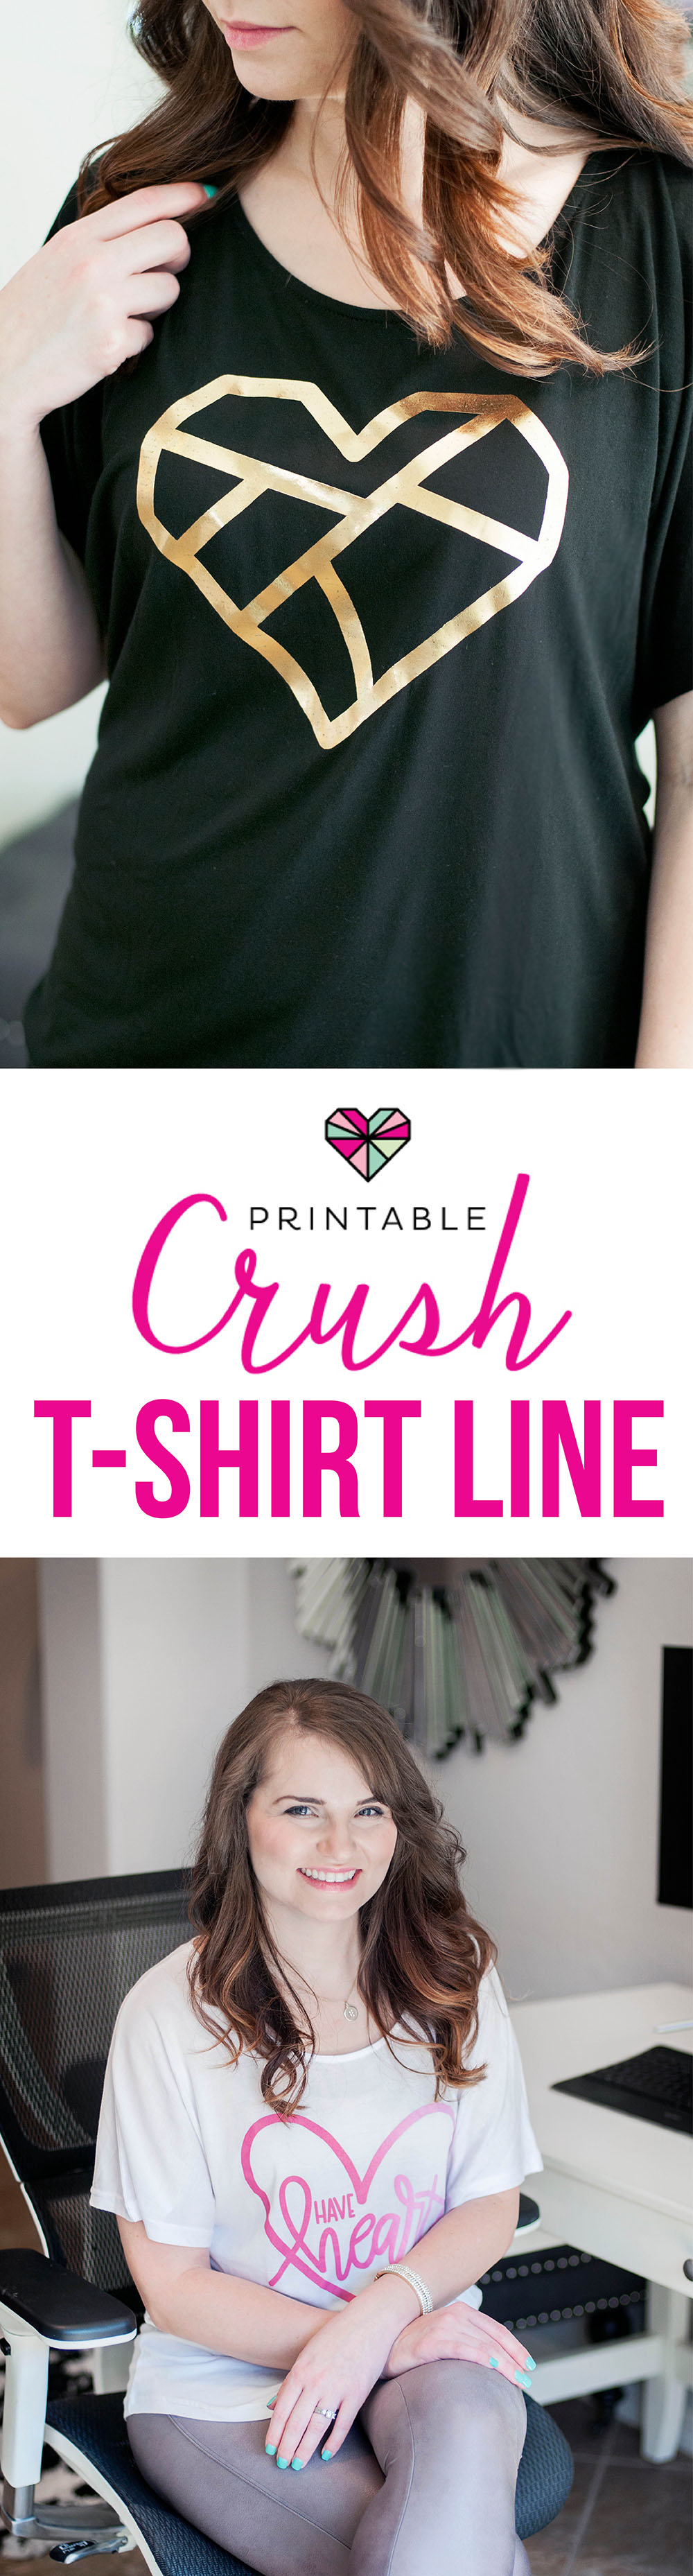 Introducing the new Printable Crush T-shirt Line with gold foil, ombre, and hand-lettereddesigns. These gorgeous tees are comfortable enough to wear at home with your yoga pants, and pretty enough to wear out on the town!